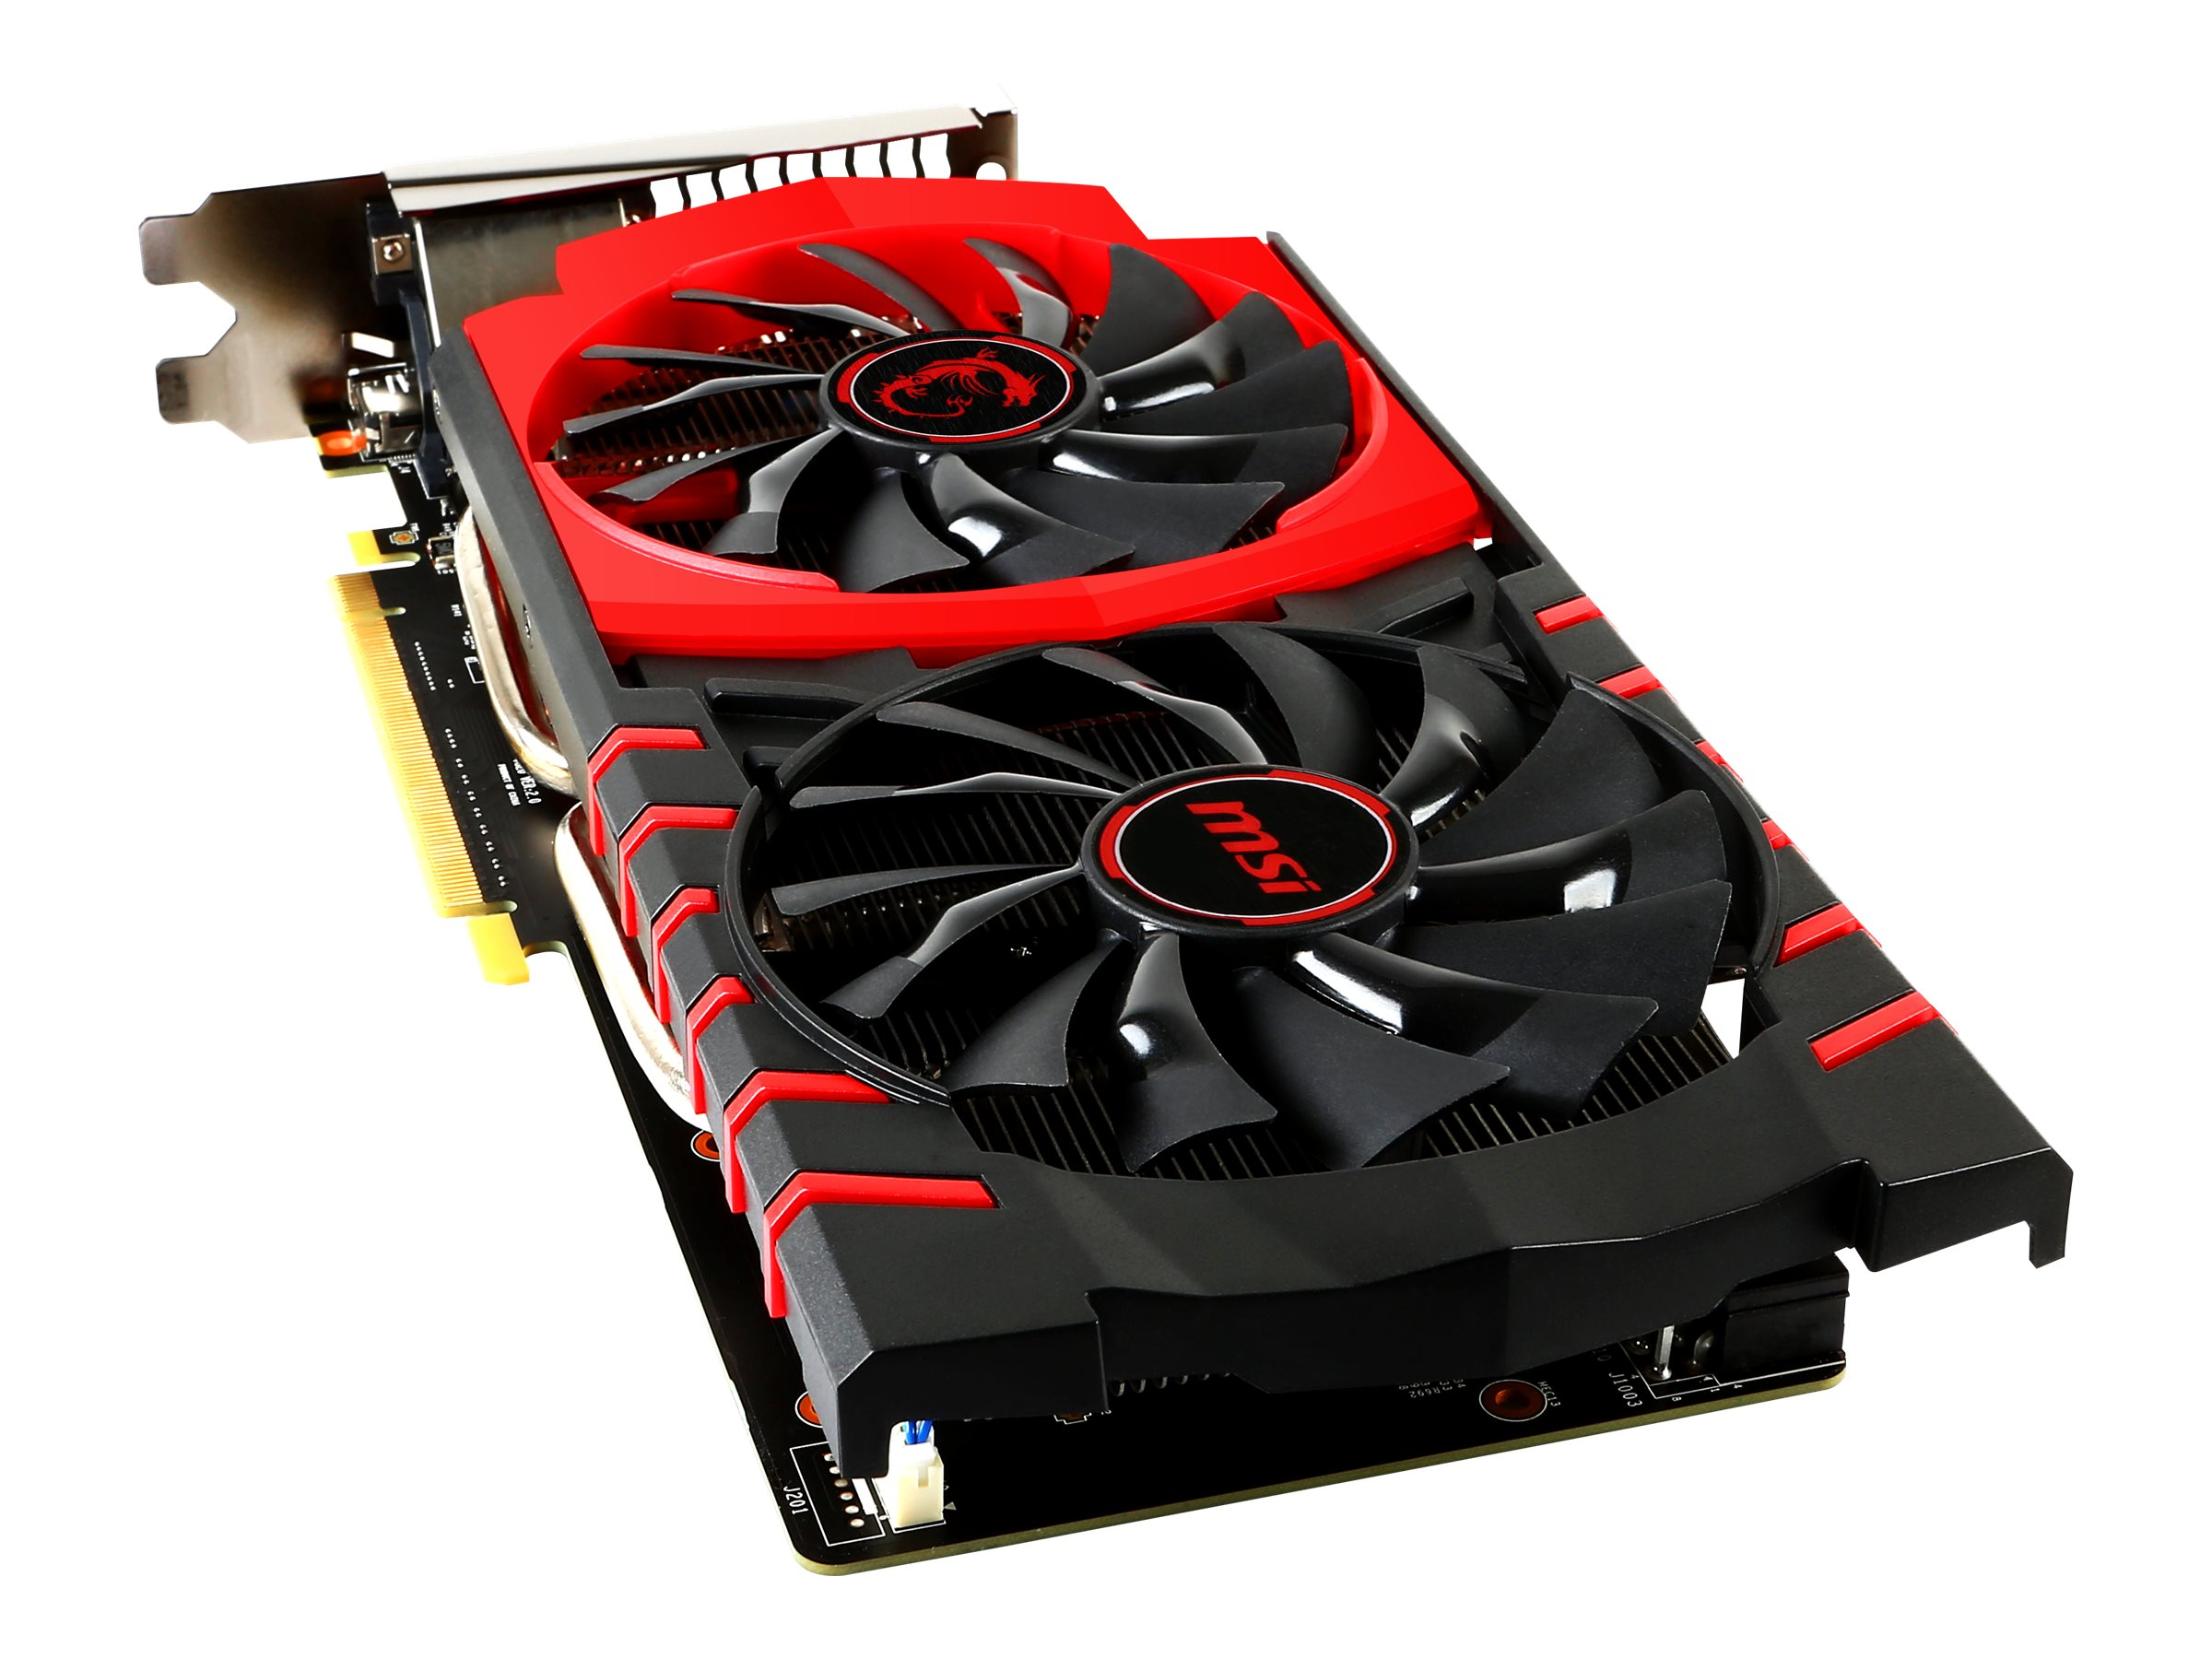 Microstar GeForce GTX 950 PCIe 3.0 x16 Graphics Card, 2GB GDDR5, GTX 950 GAMING 2G, 29832695, Graphics/Video Accelerators